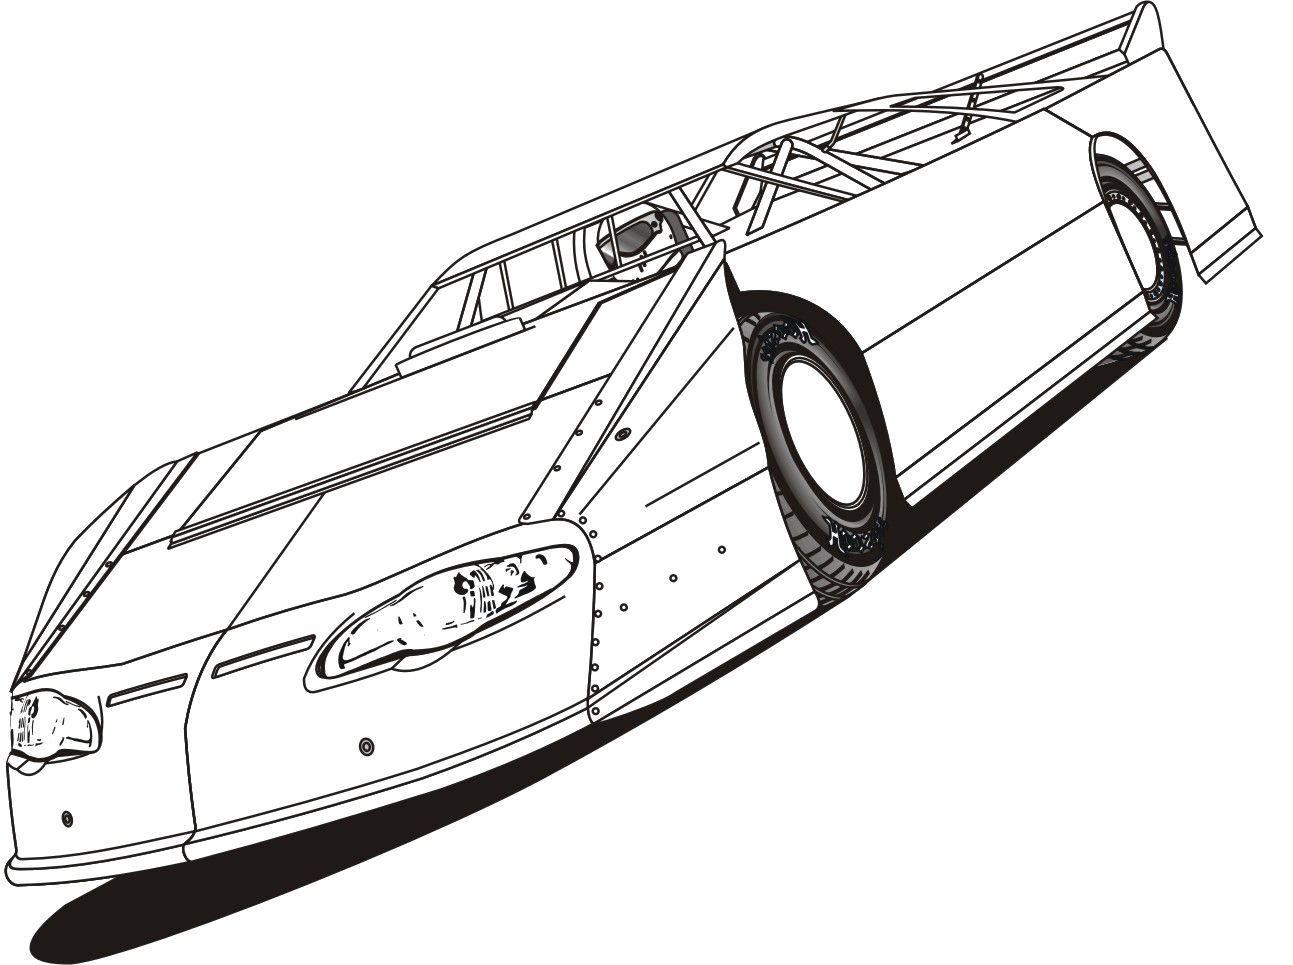 Race Track Car Coloring Pages Race Car Coloring Pages Cars Coloring Pages Coloring Pages